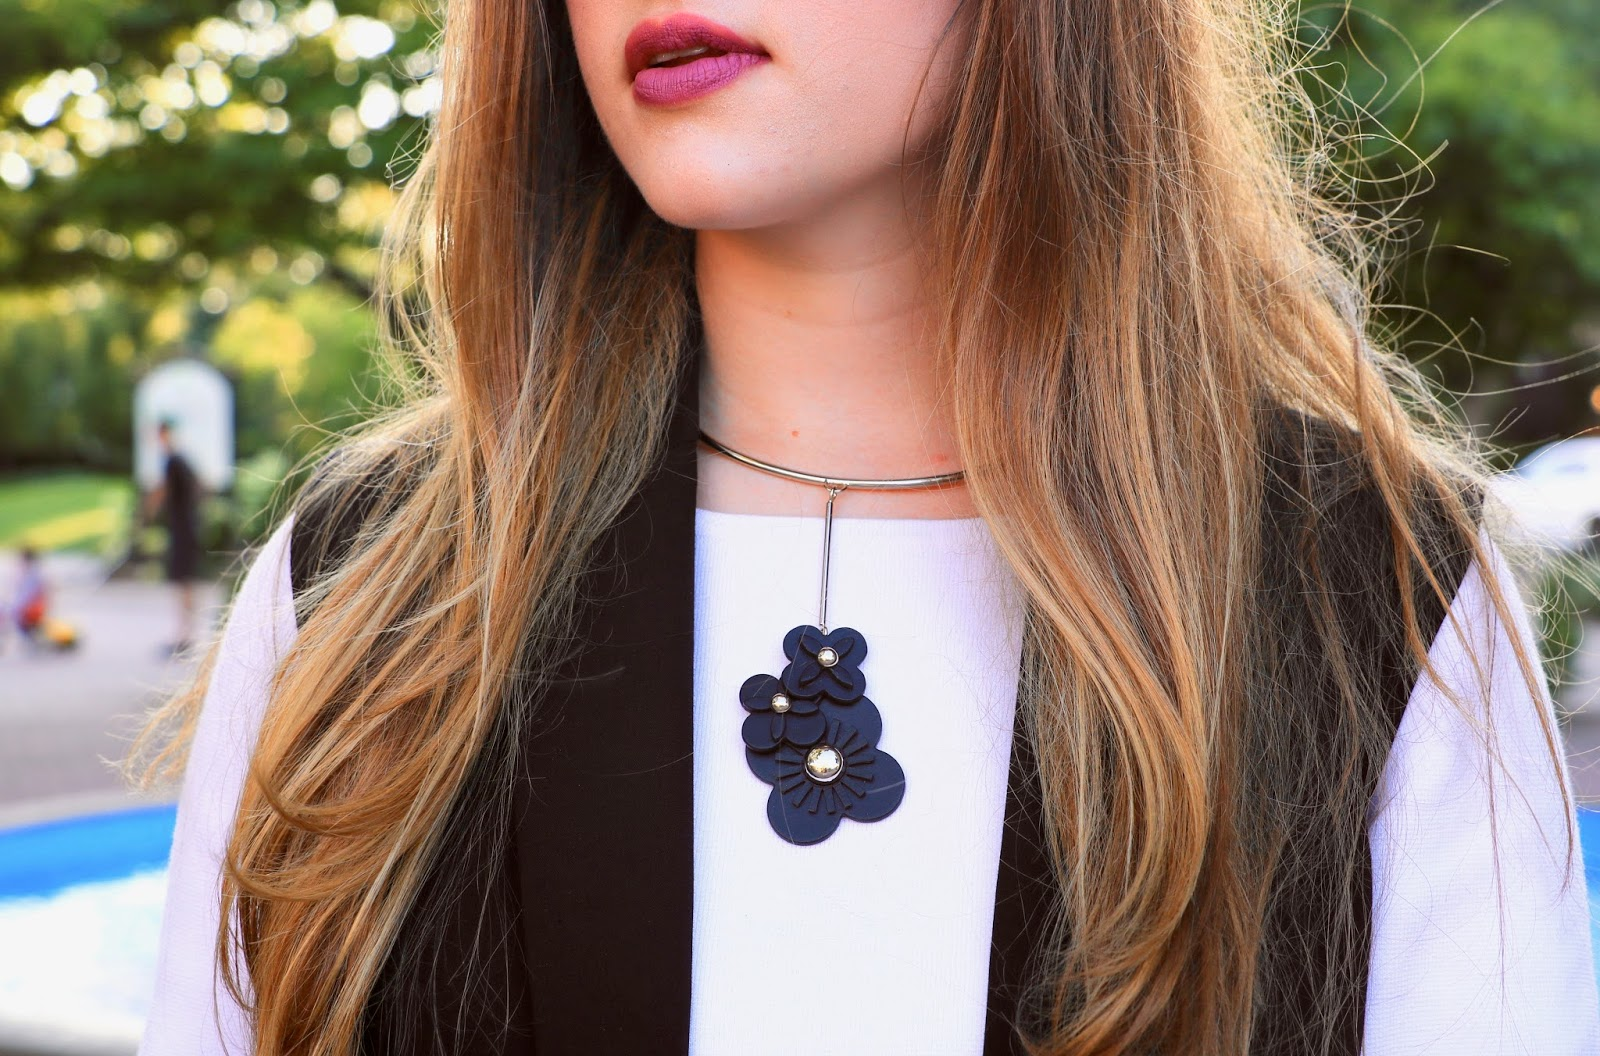 NYC fashion blogger Kathleen Harper of Kat's Fashion Fix wearing a silver flower choker